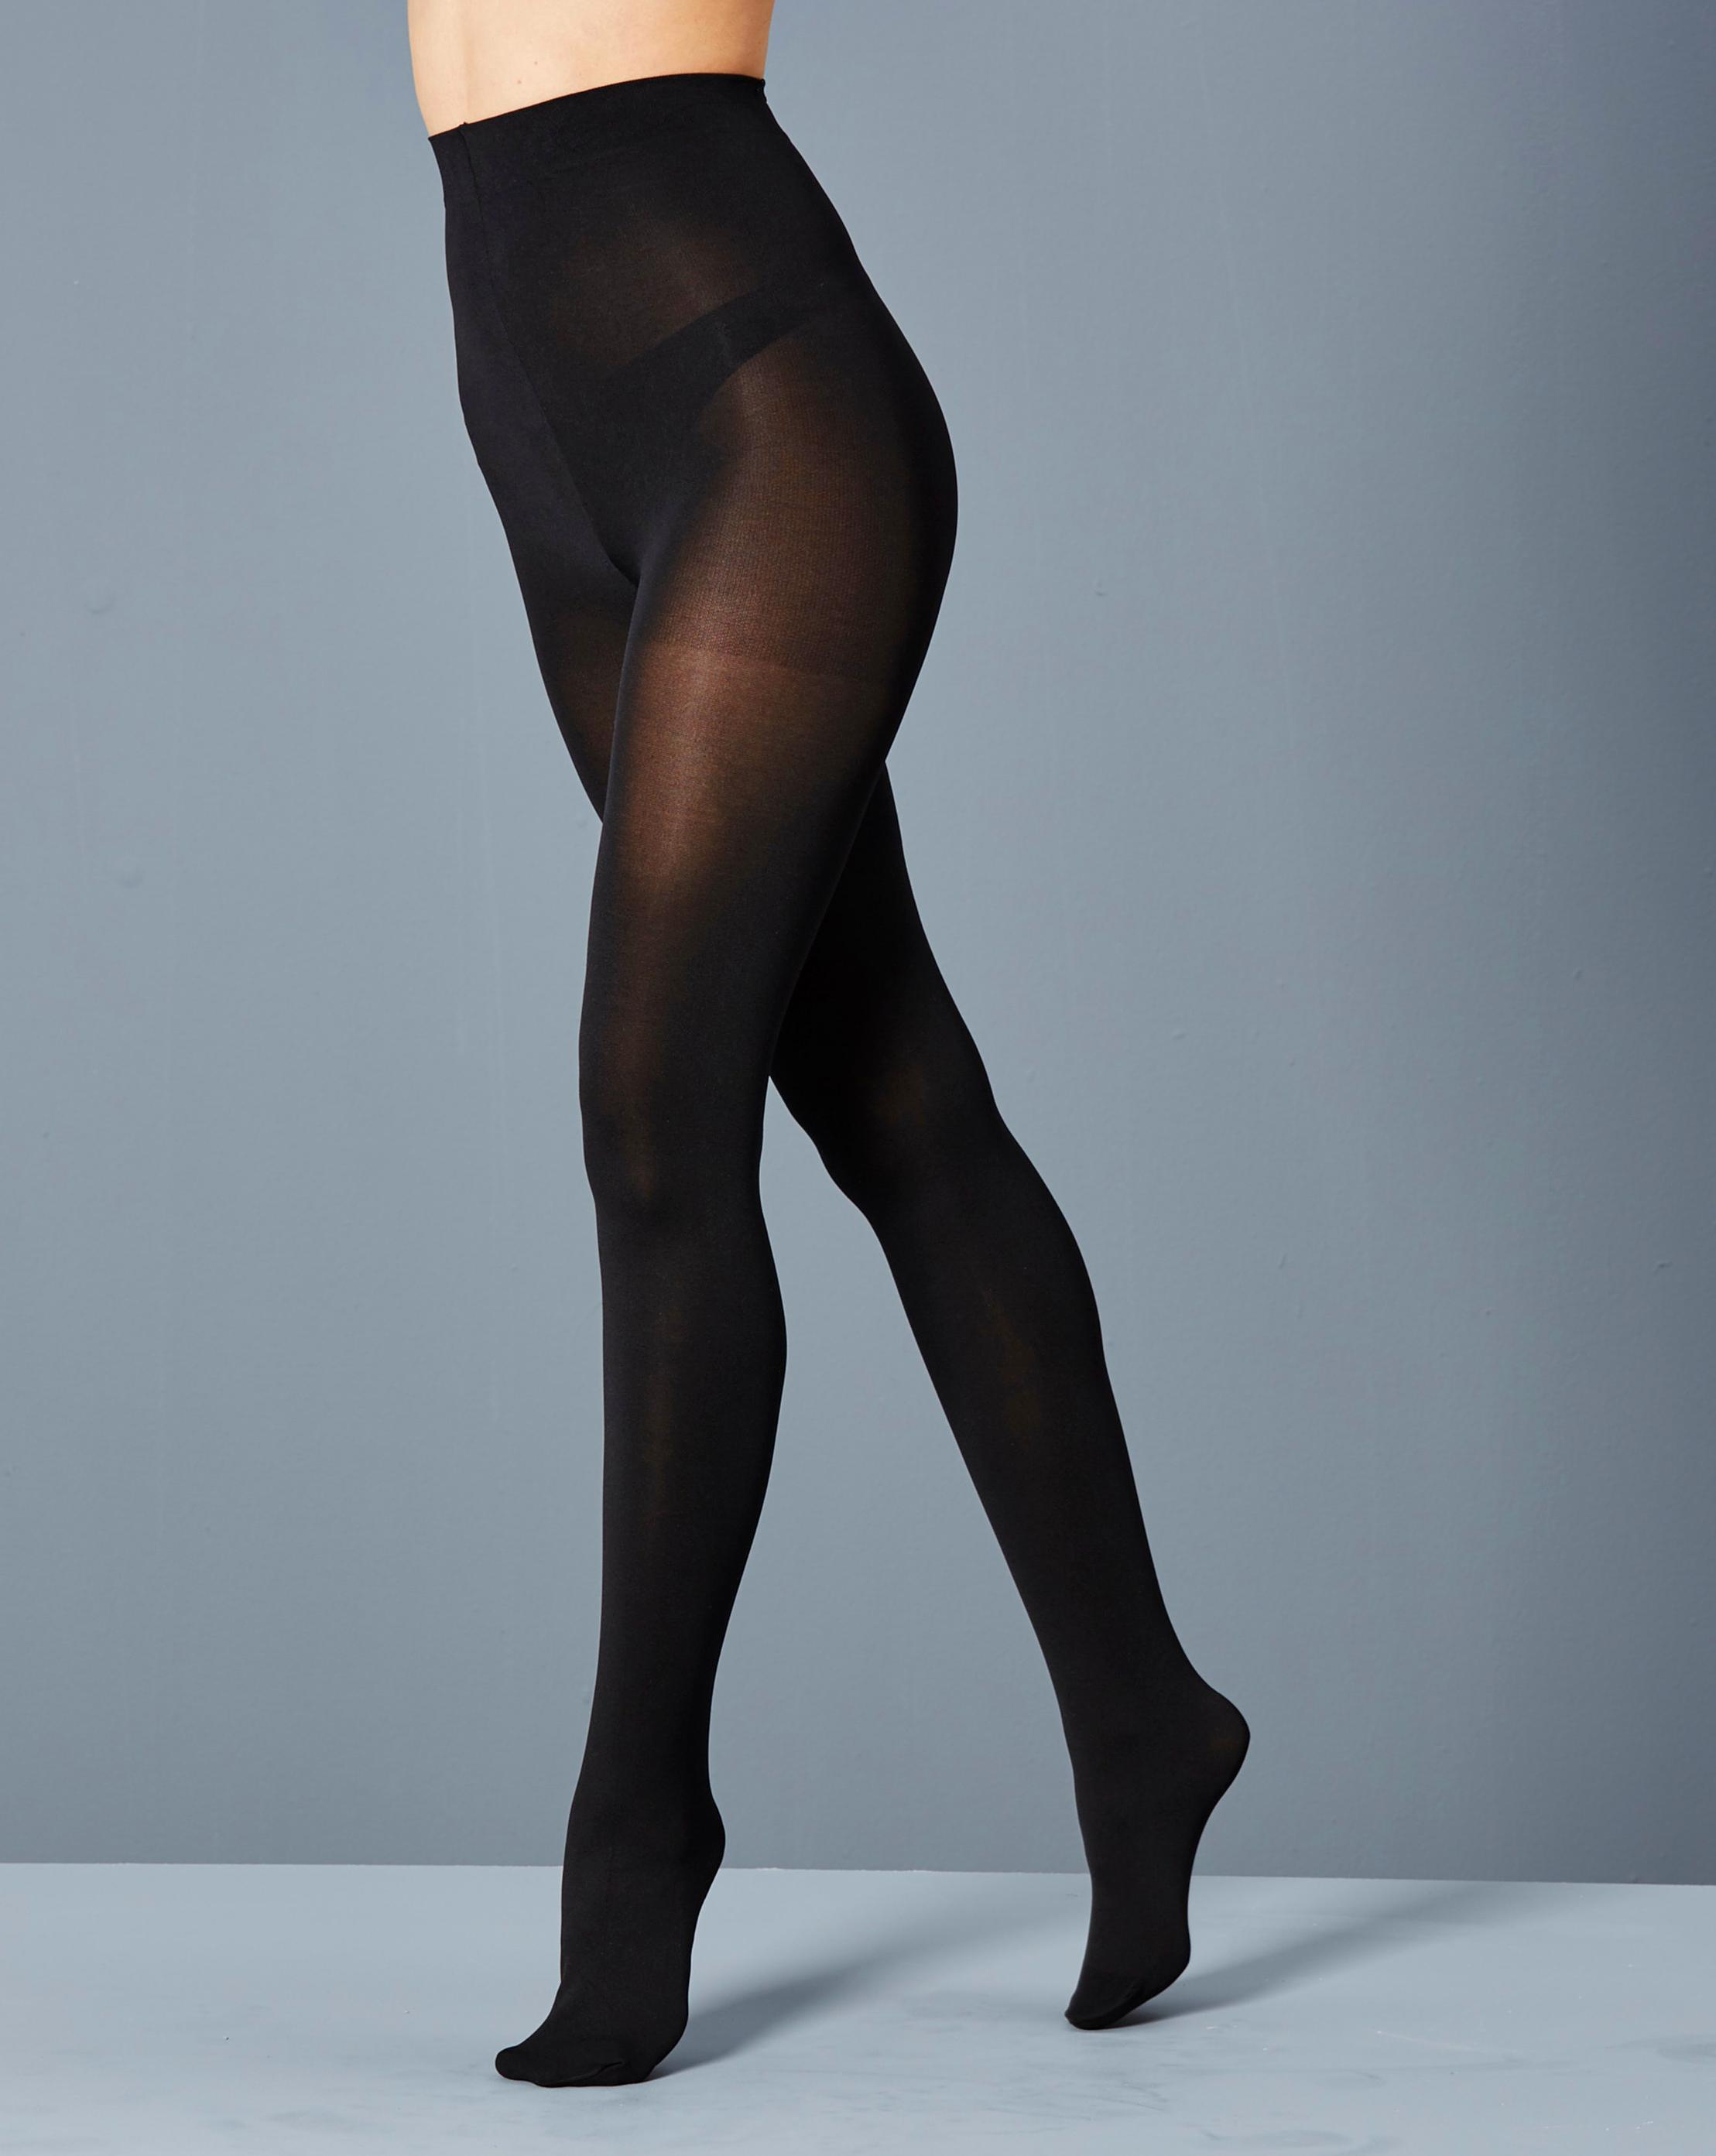 c4d206ef372 Simply Be 2 Pack Opaque 100 Denier Pantyhose in Black - Lyst